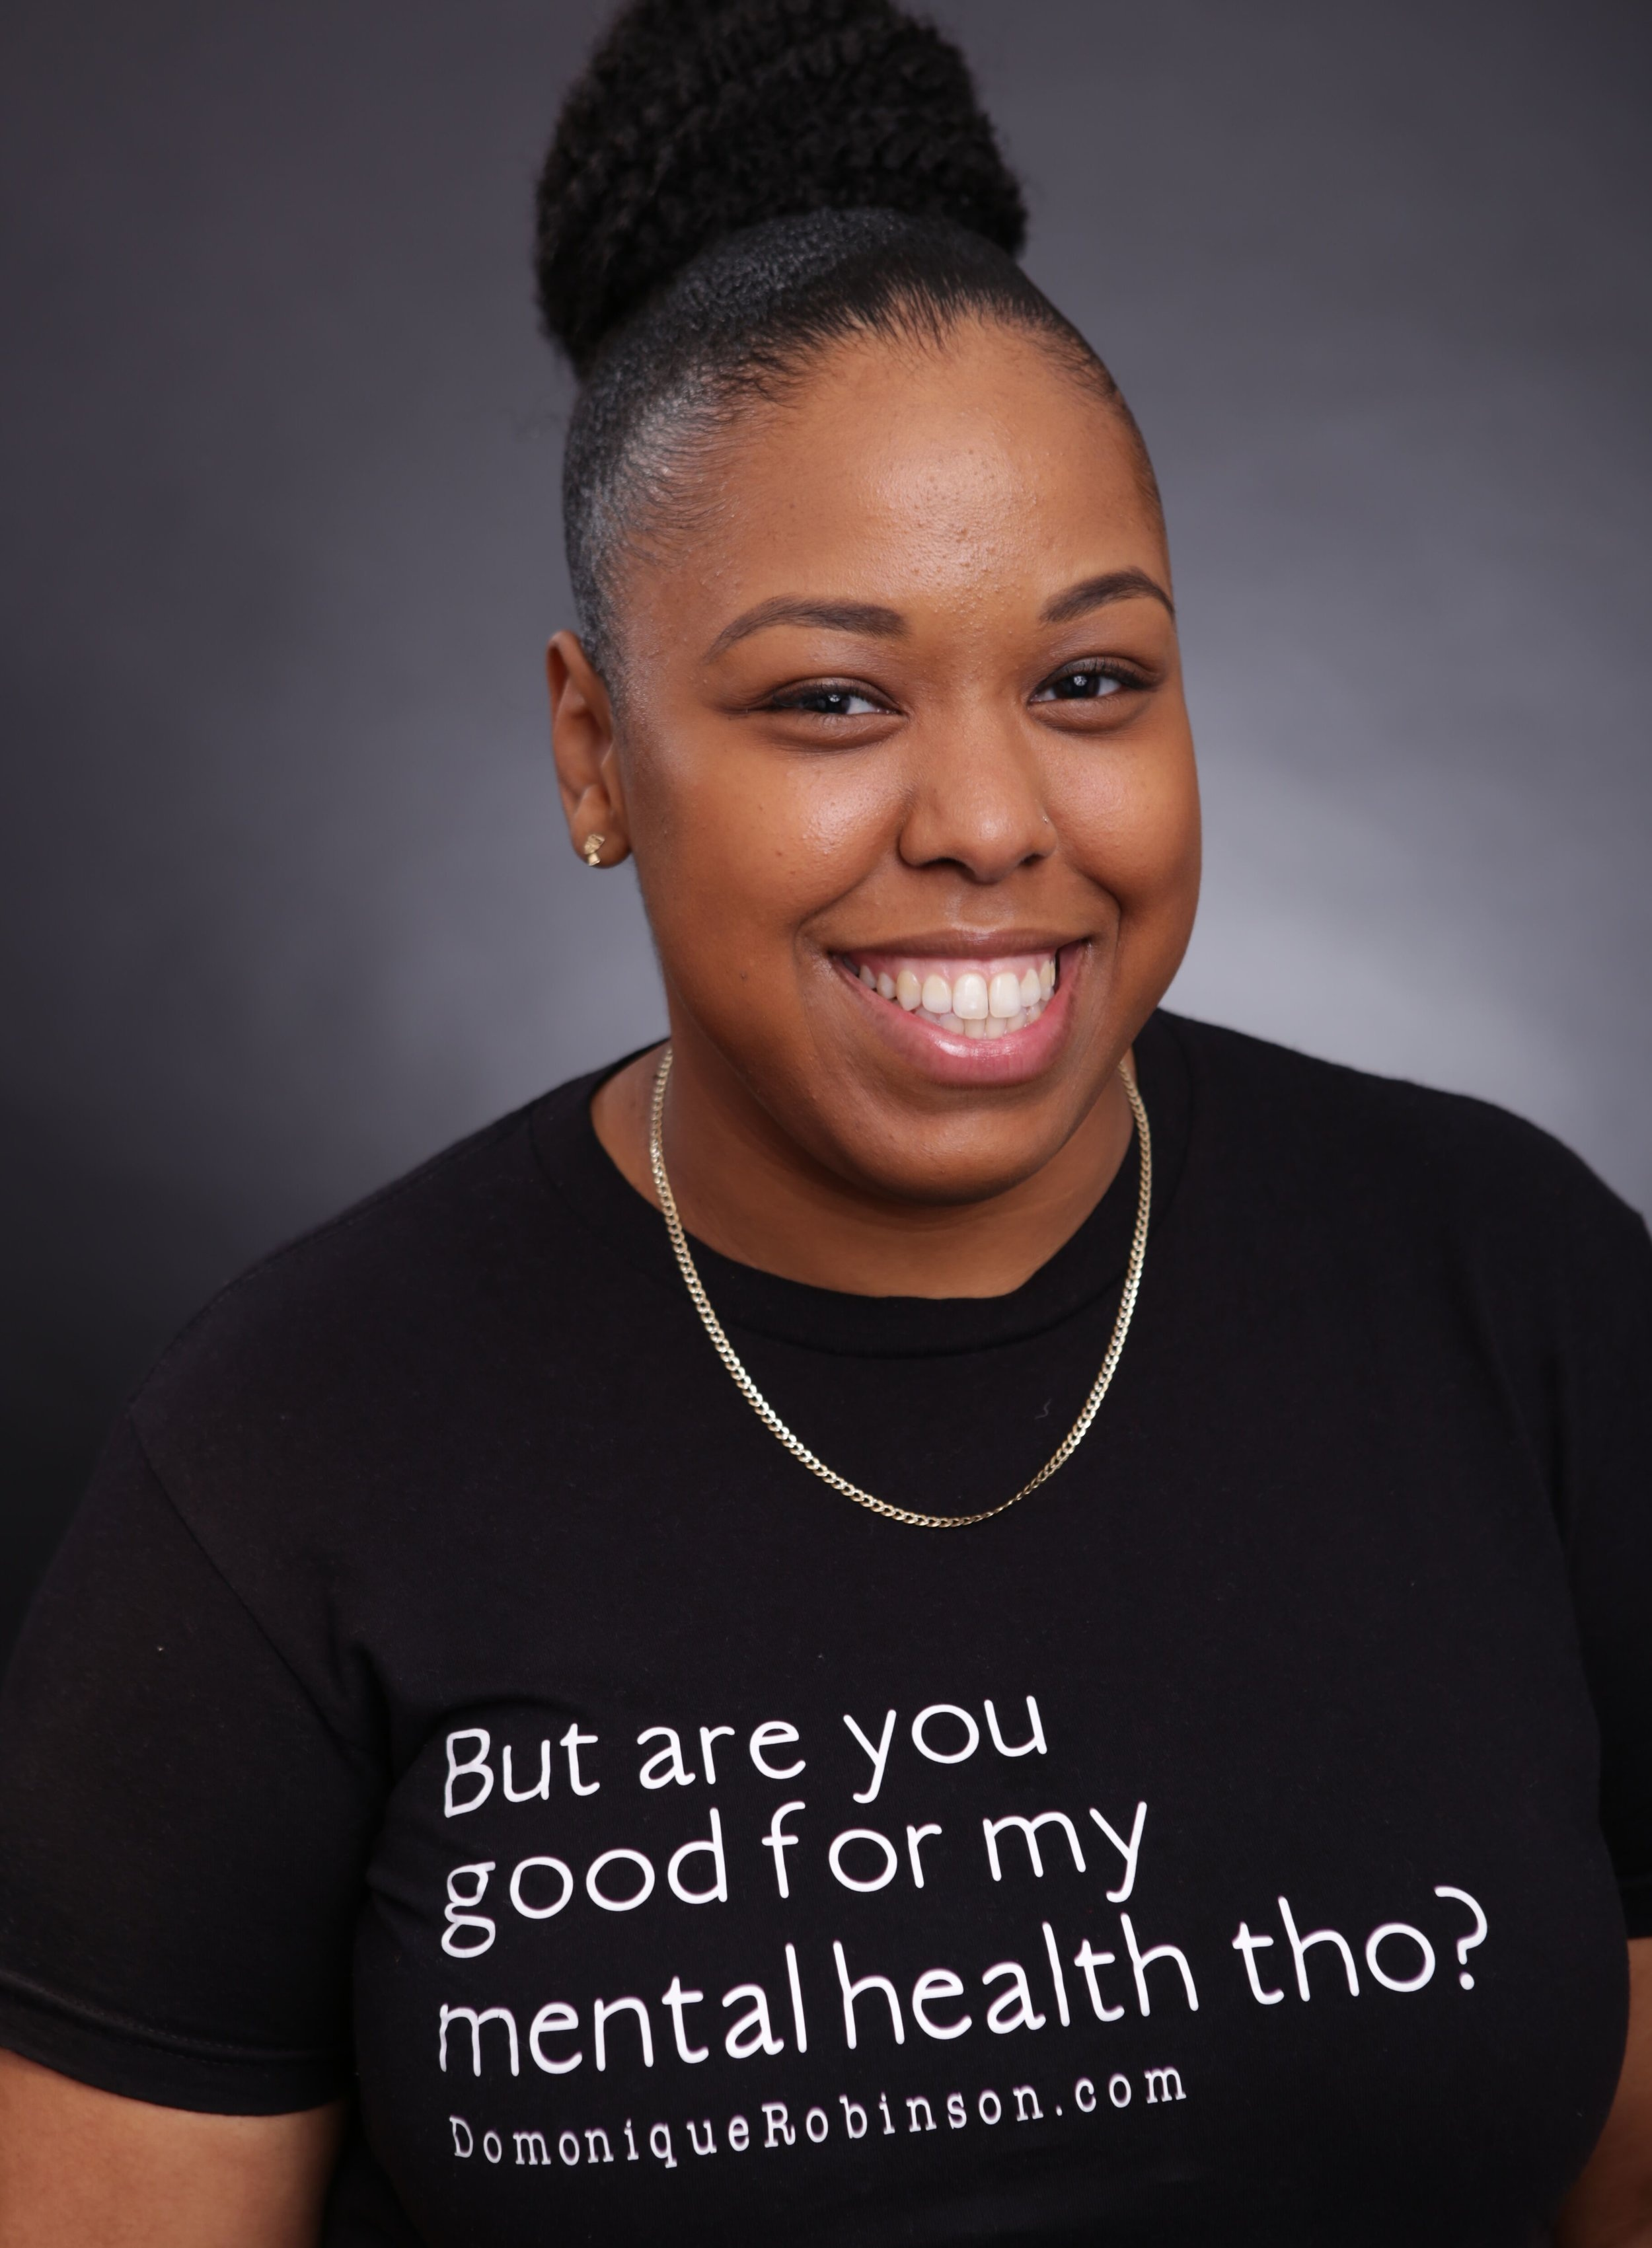 About the Author - Domonique Robinson is a Licensed Social Worker in New York City where she was born and raised. Domonique has over 9 years of experience working with children, adults, and families who seek healing and emotional wellbeing. In 2013, she obtained her Bachelor's degree in Social Work from Lehman College and in 2014 obtained her Master's degree in Social Work from Hunter College. She currently works as a School Mental Health Consultant and a Psychotherapist. Her passion includes educating the black community on mental health and self care through her blog at DomoniqueRobinson.com. You can follow her on instagram at: @DomoniqueRobinsonLMSW